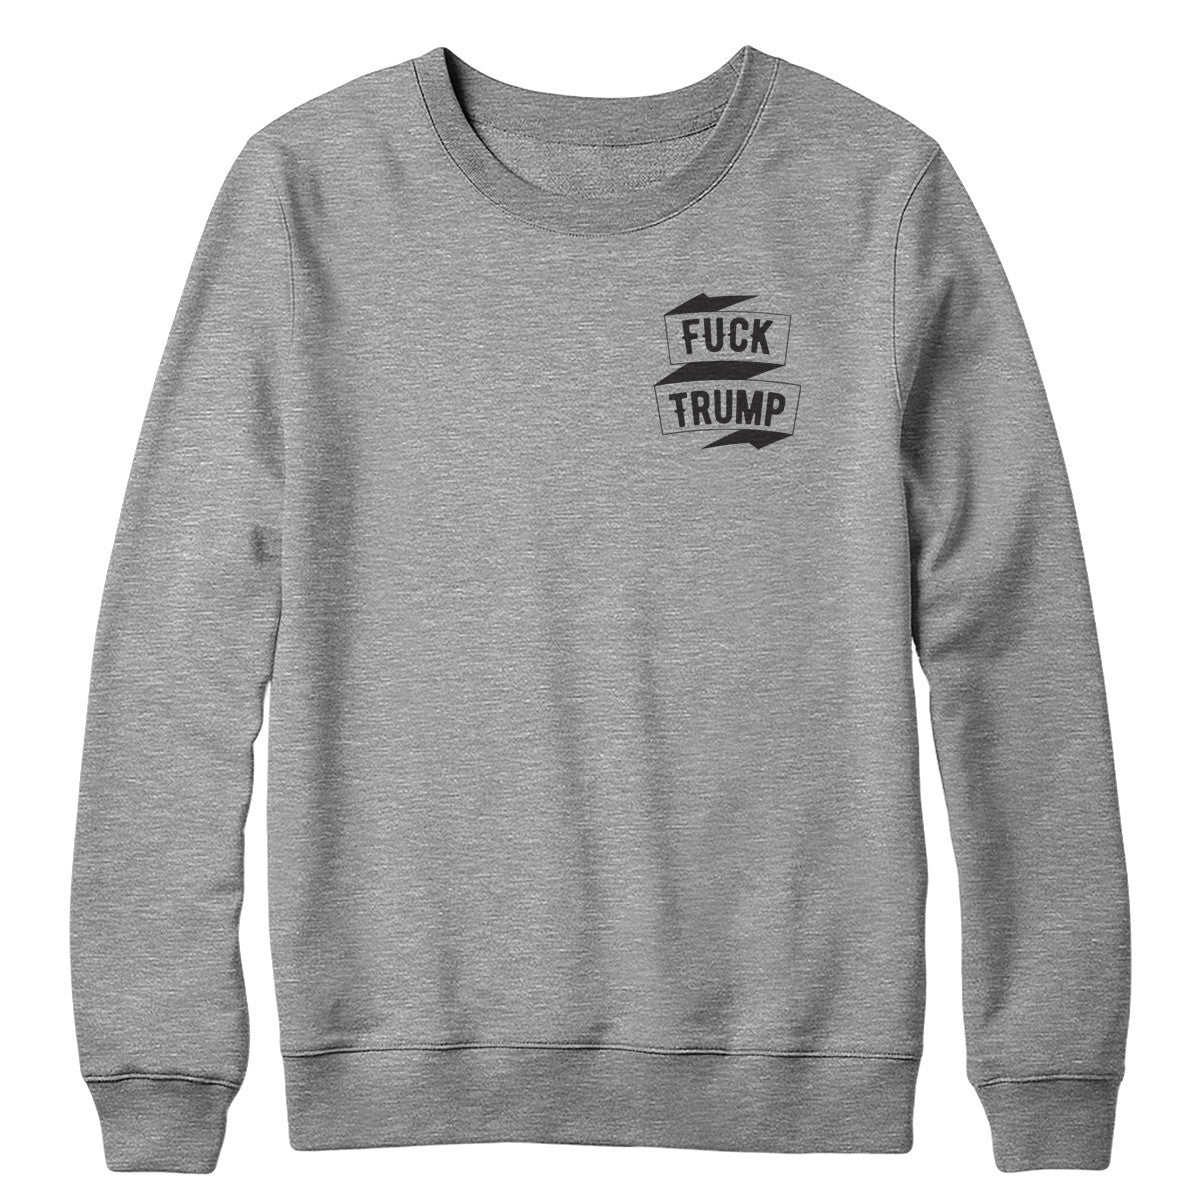 Eff Trump Pocket Crewneck Sweatshirt